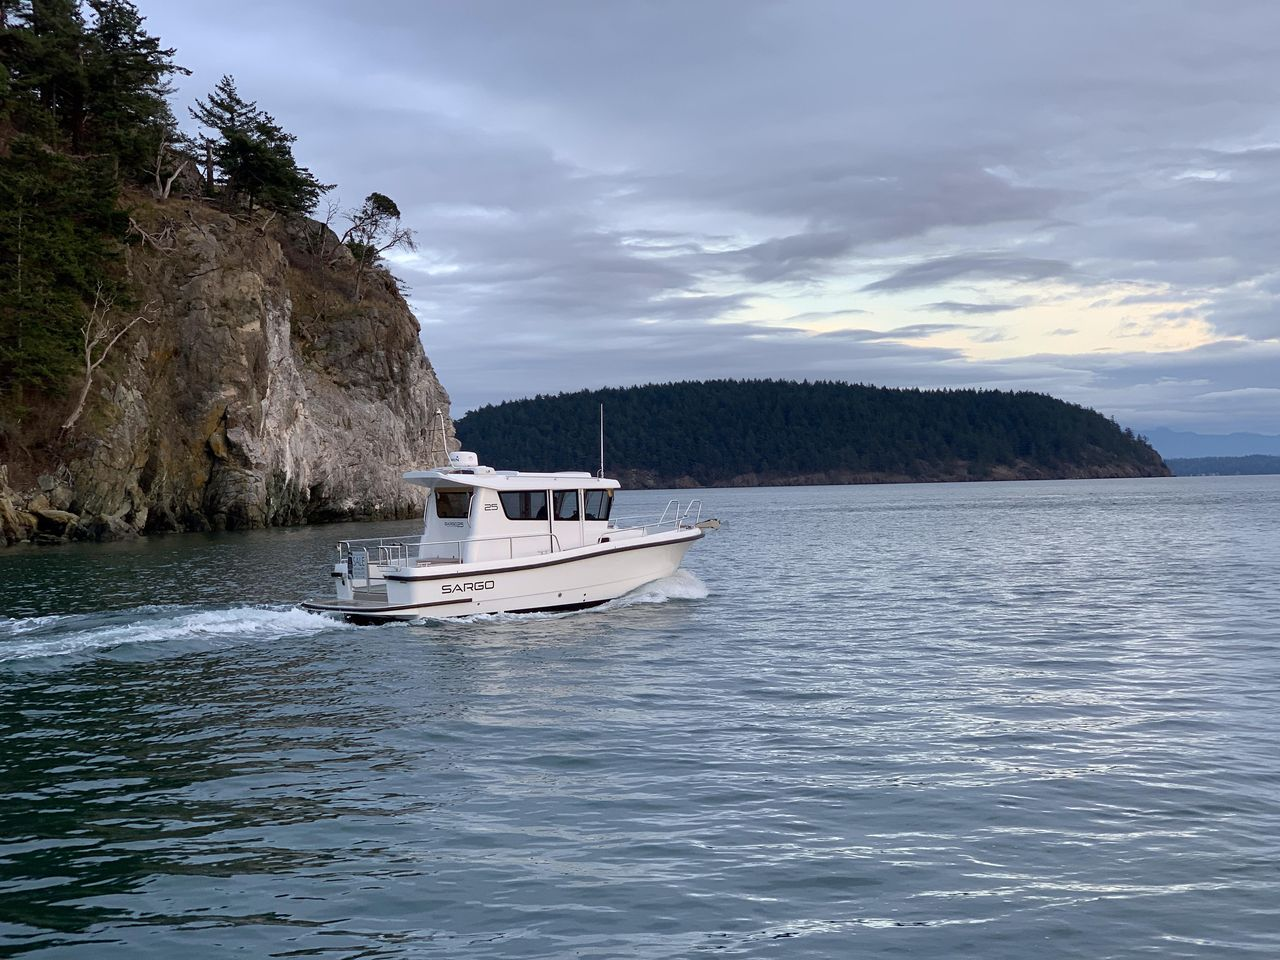 2018 New Sargo 25 Sports Cruiser Boat For Sale - Anacortes ... Sargo Sea Map on volcano map, mariana trench map, peninsula map, sailing map, massif map, sound map, channel map, ocean map, estuary map, coral reef map, seabed map, mediterranean map, caribbean map, gulf map, glacier map, bay map, south east asia map, world map, lagoon map, lake map,